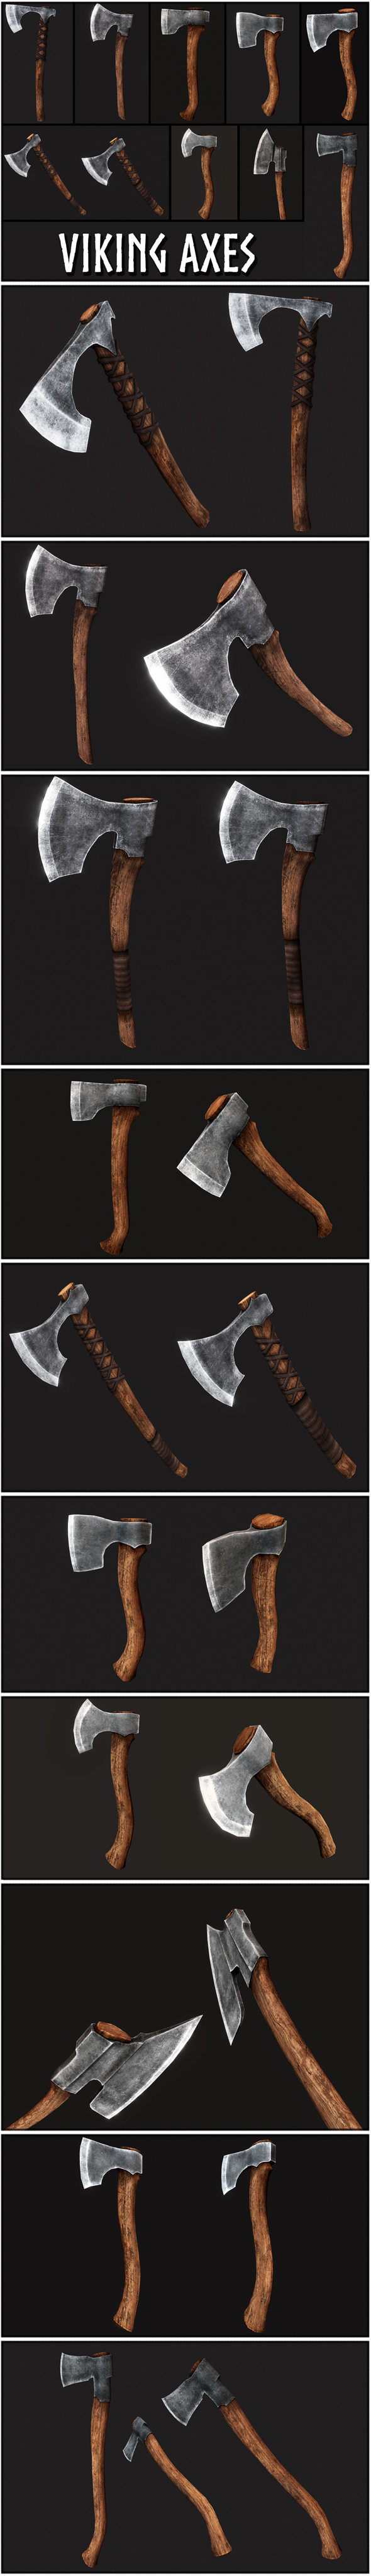 Viking Axes Collection - 3DOcean Item for Sale